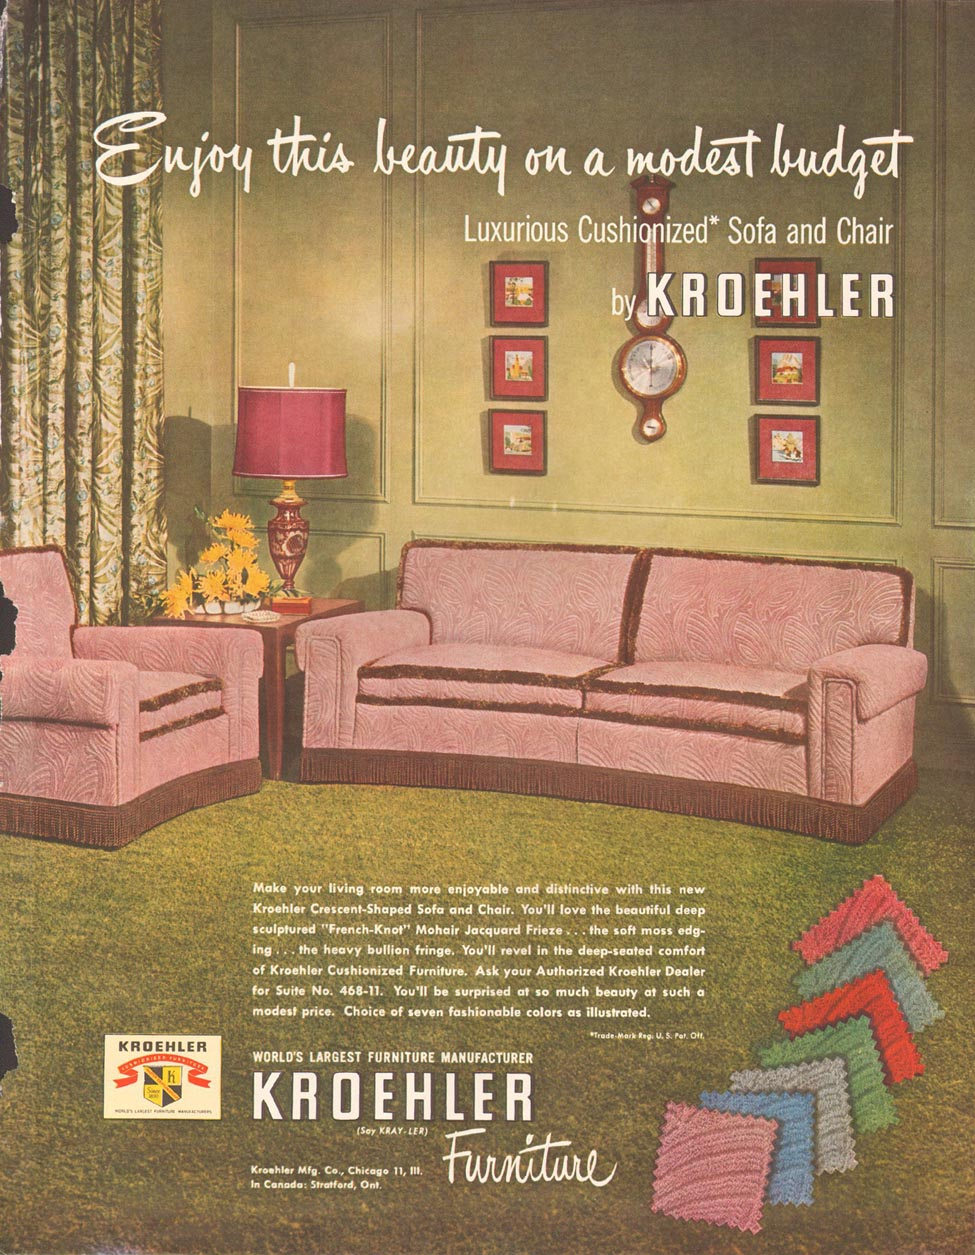 KROEHLER FURNITURE LADIES' HOME JOURNAL 11/01/1950 p. 15